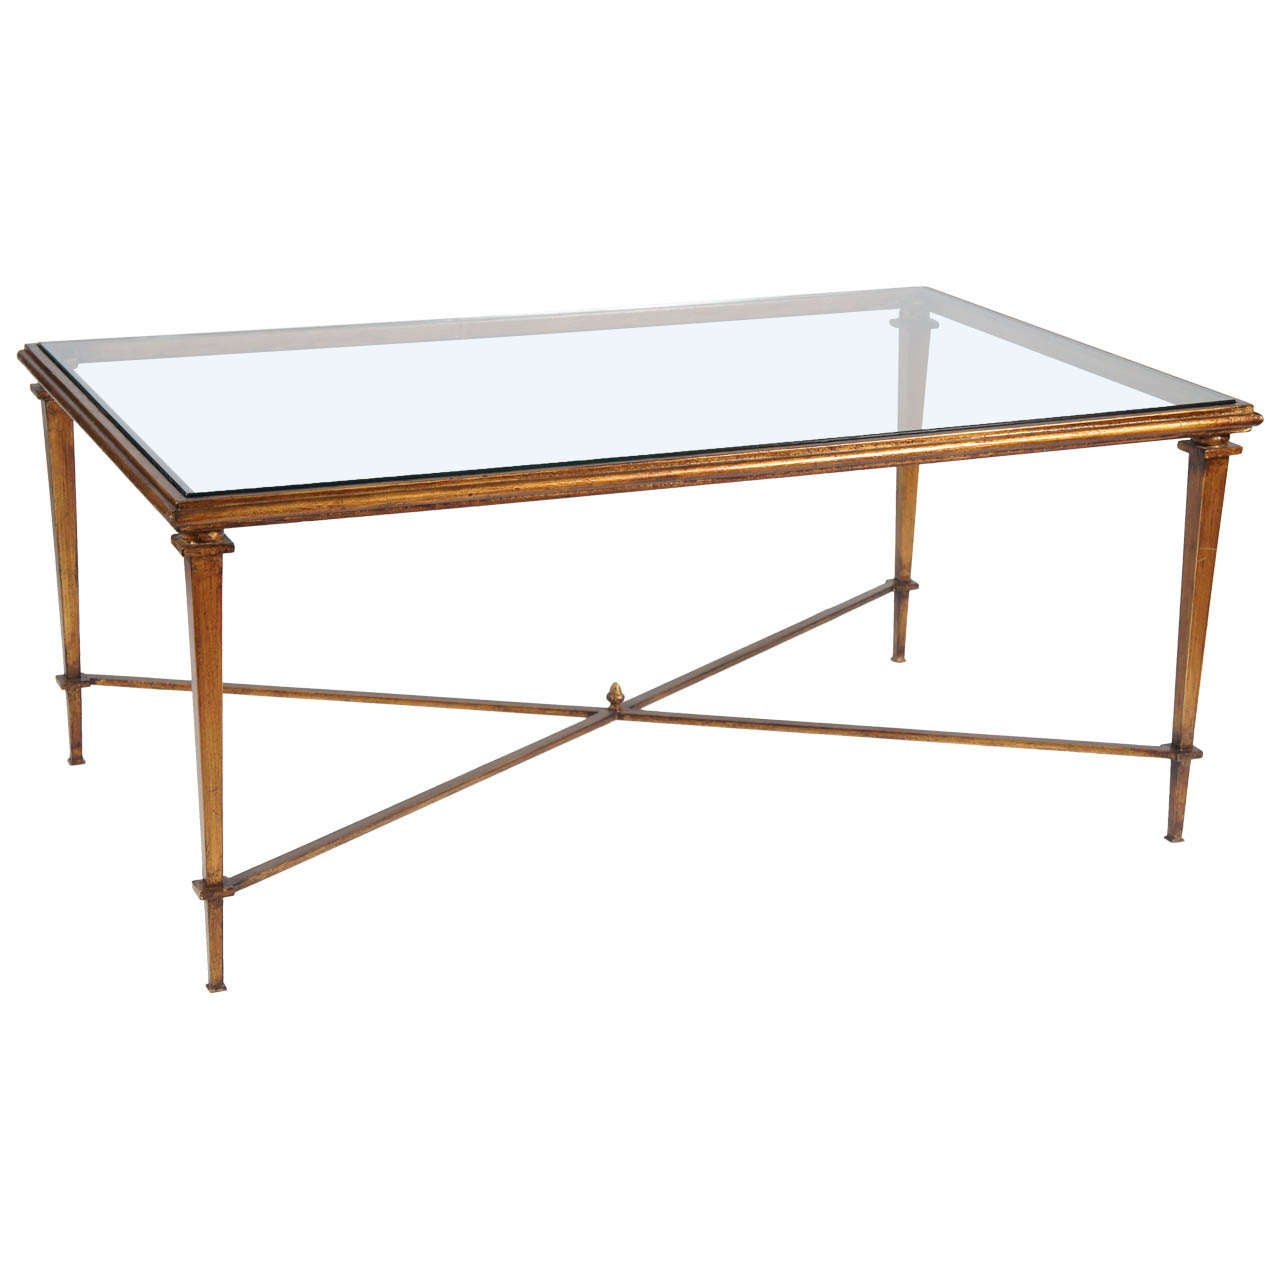 Neoclassical style metal coffee table with glass top for sale at 1stdibs Steel and glass coffee table